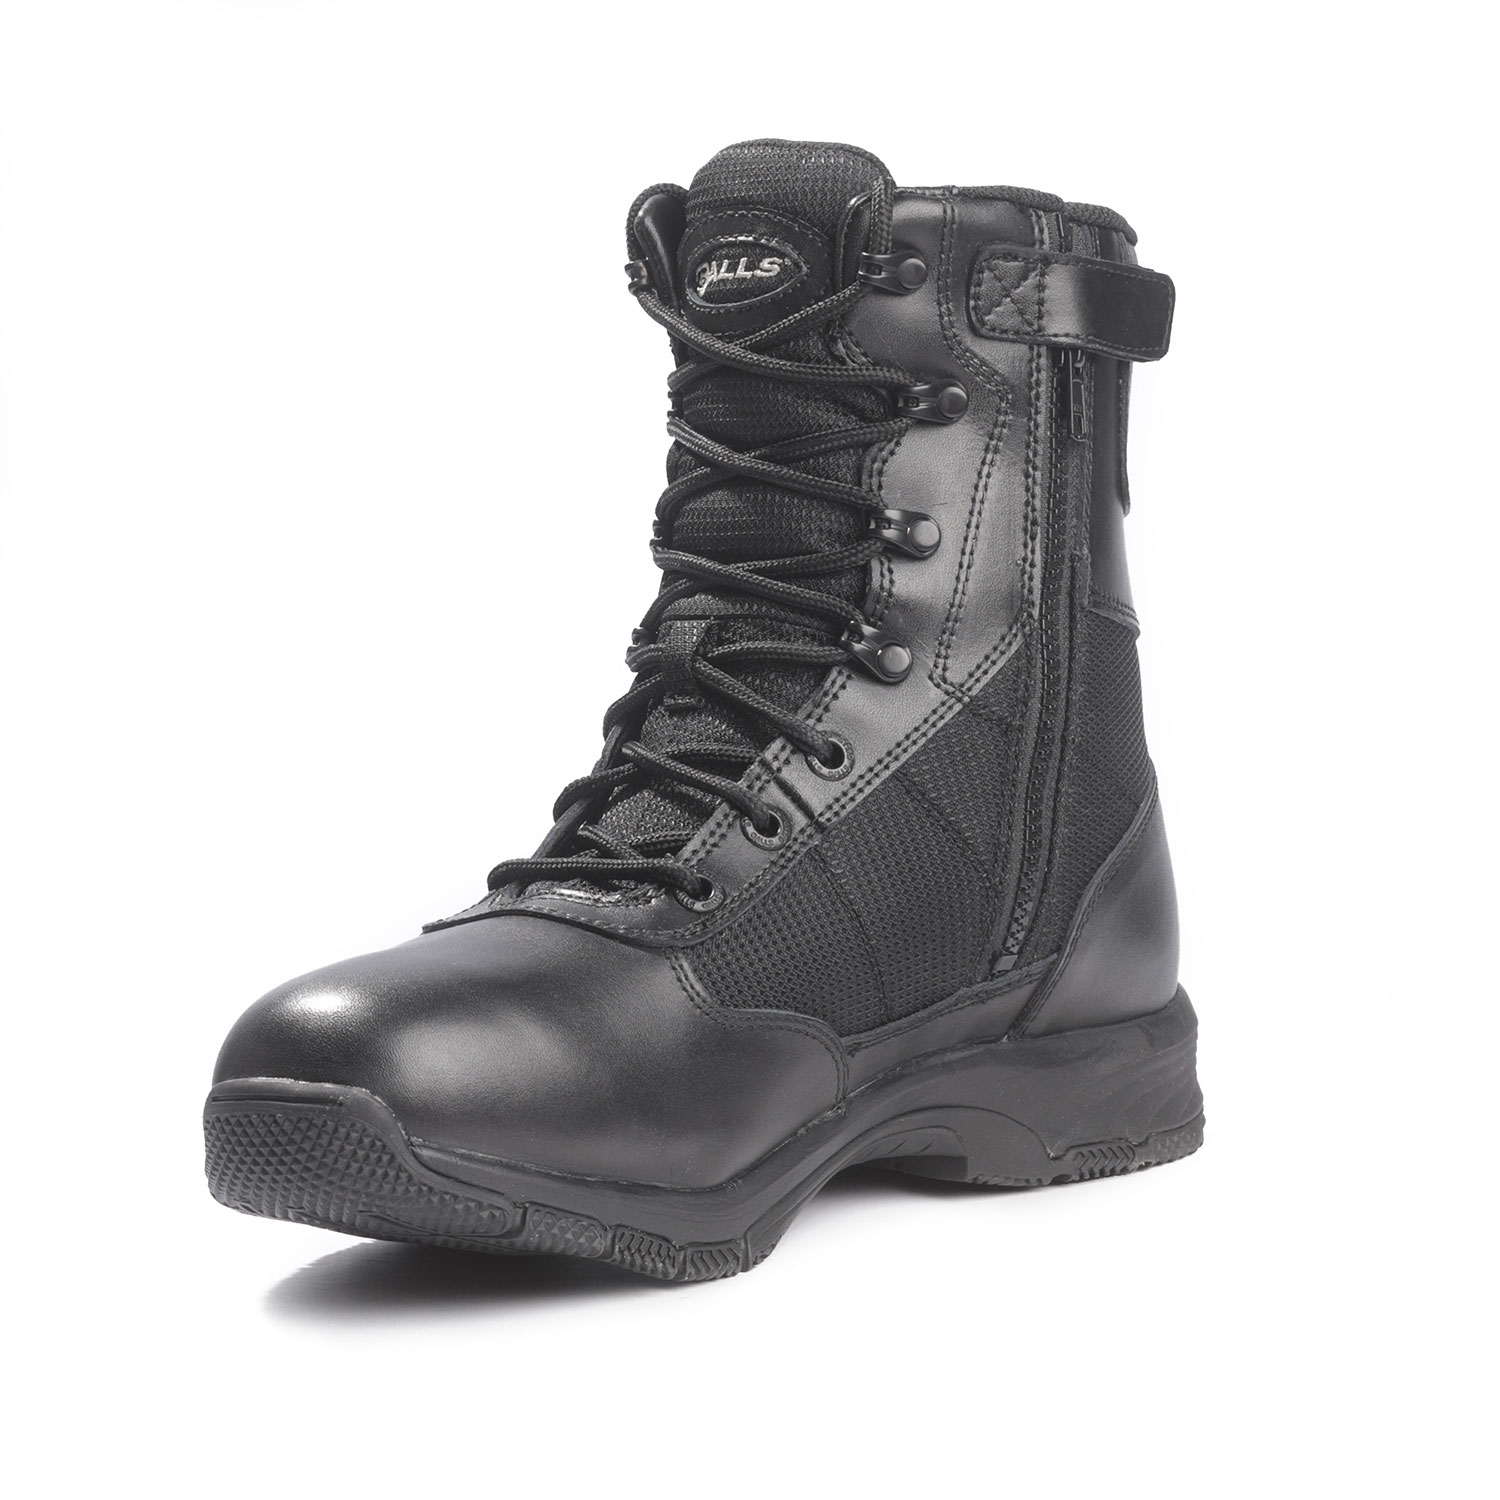 Galls G Tac Womens Athletic 8 Quot Wp Polishable Toe Boot